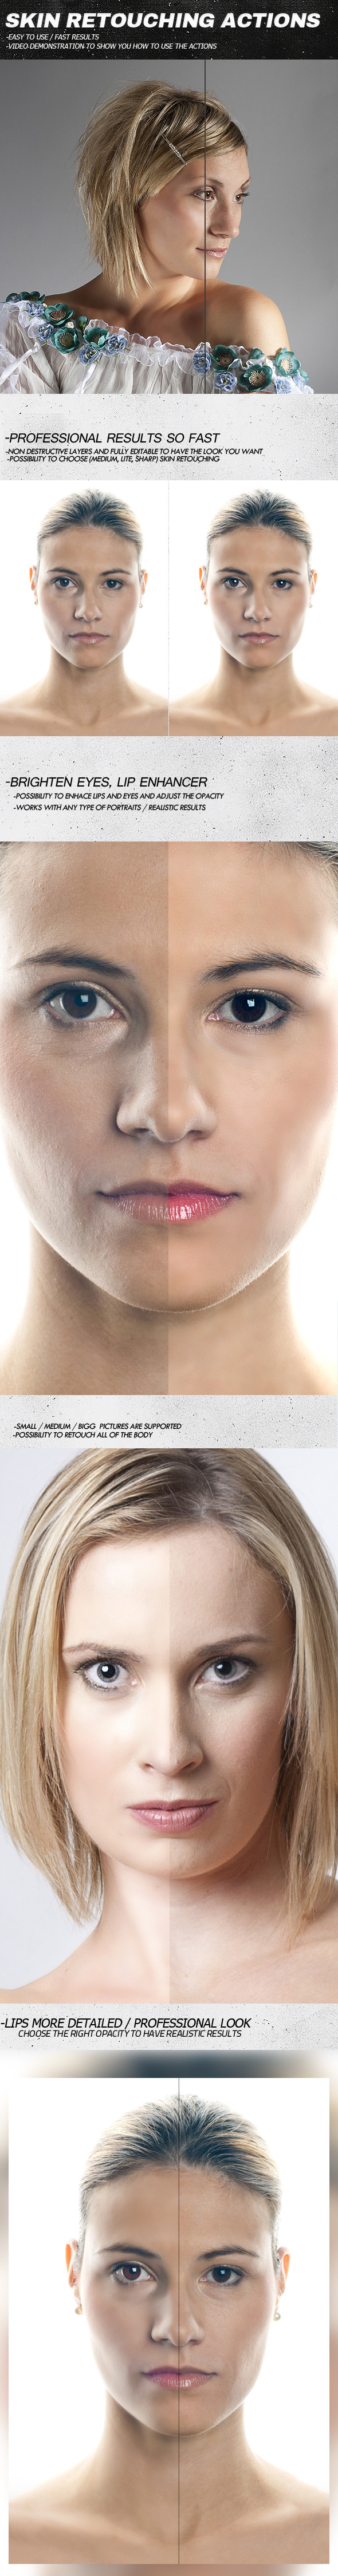 GraphicRiver Skin Retouching Actions 10961874